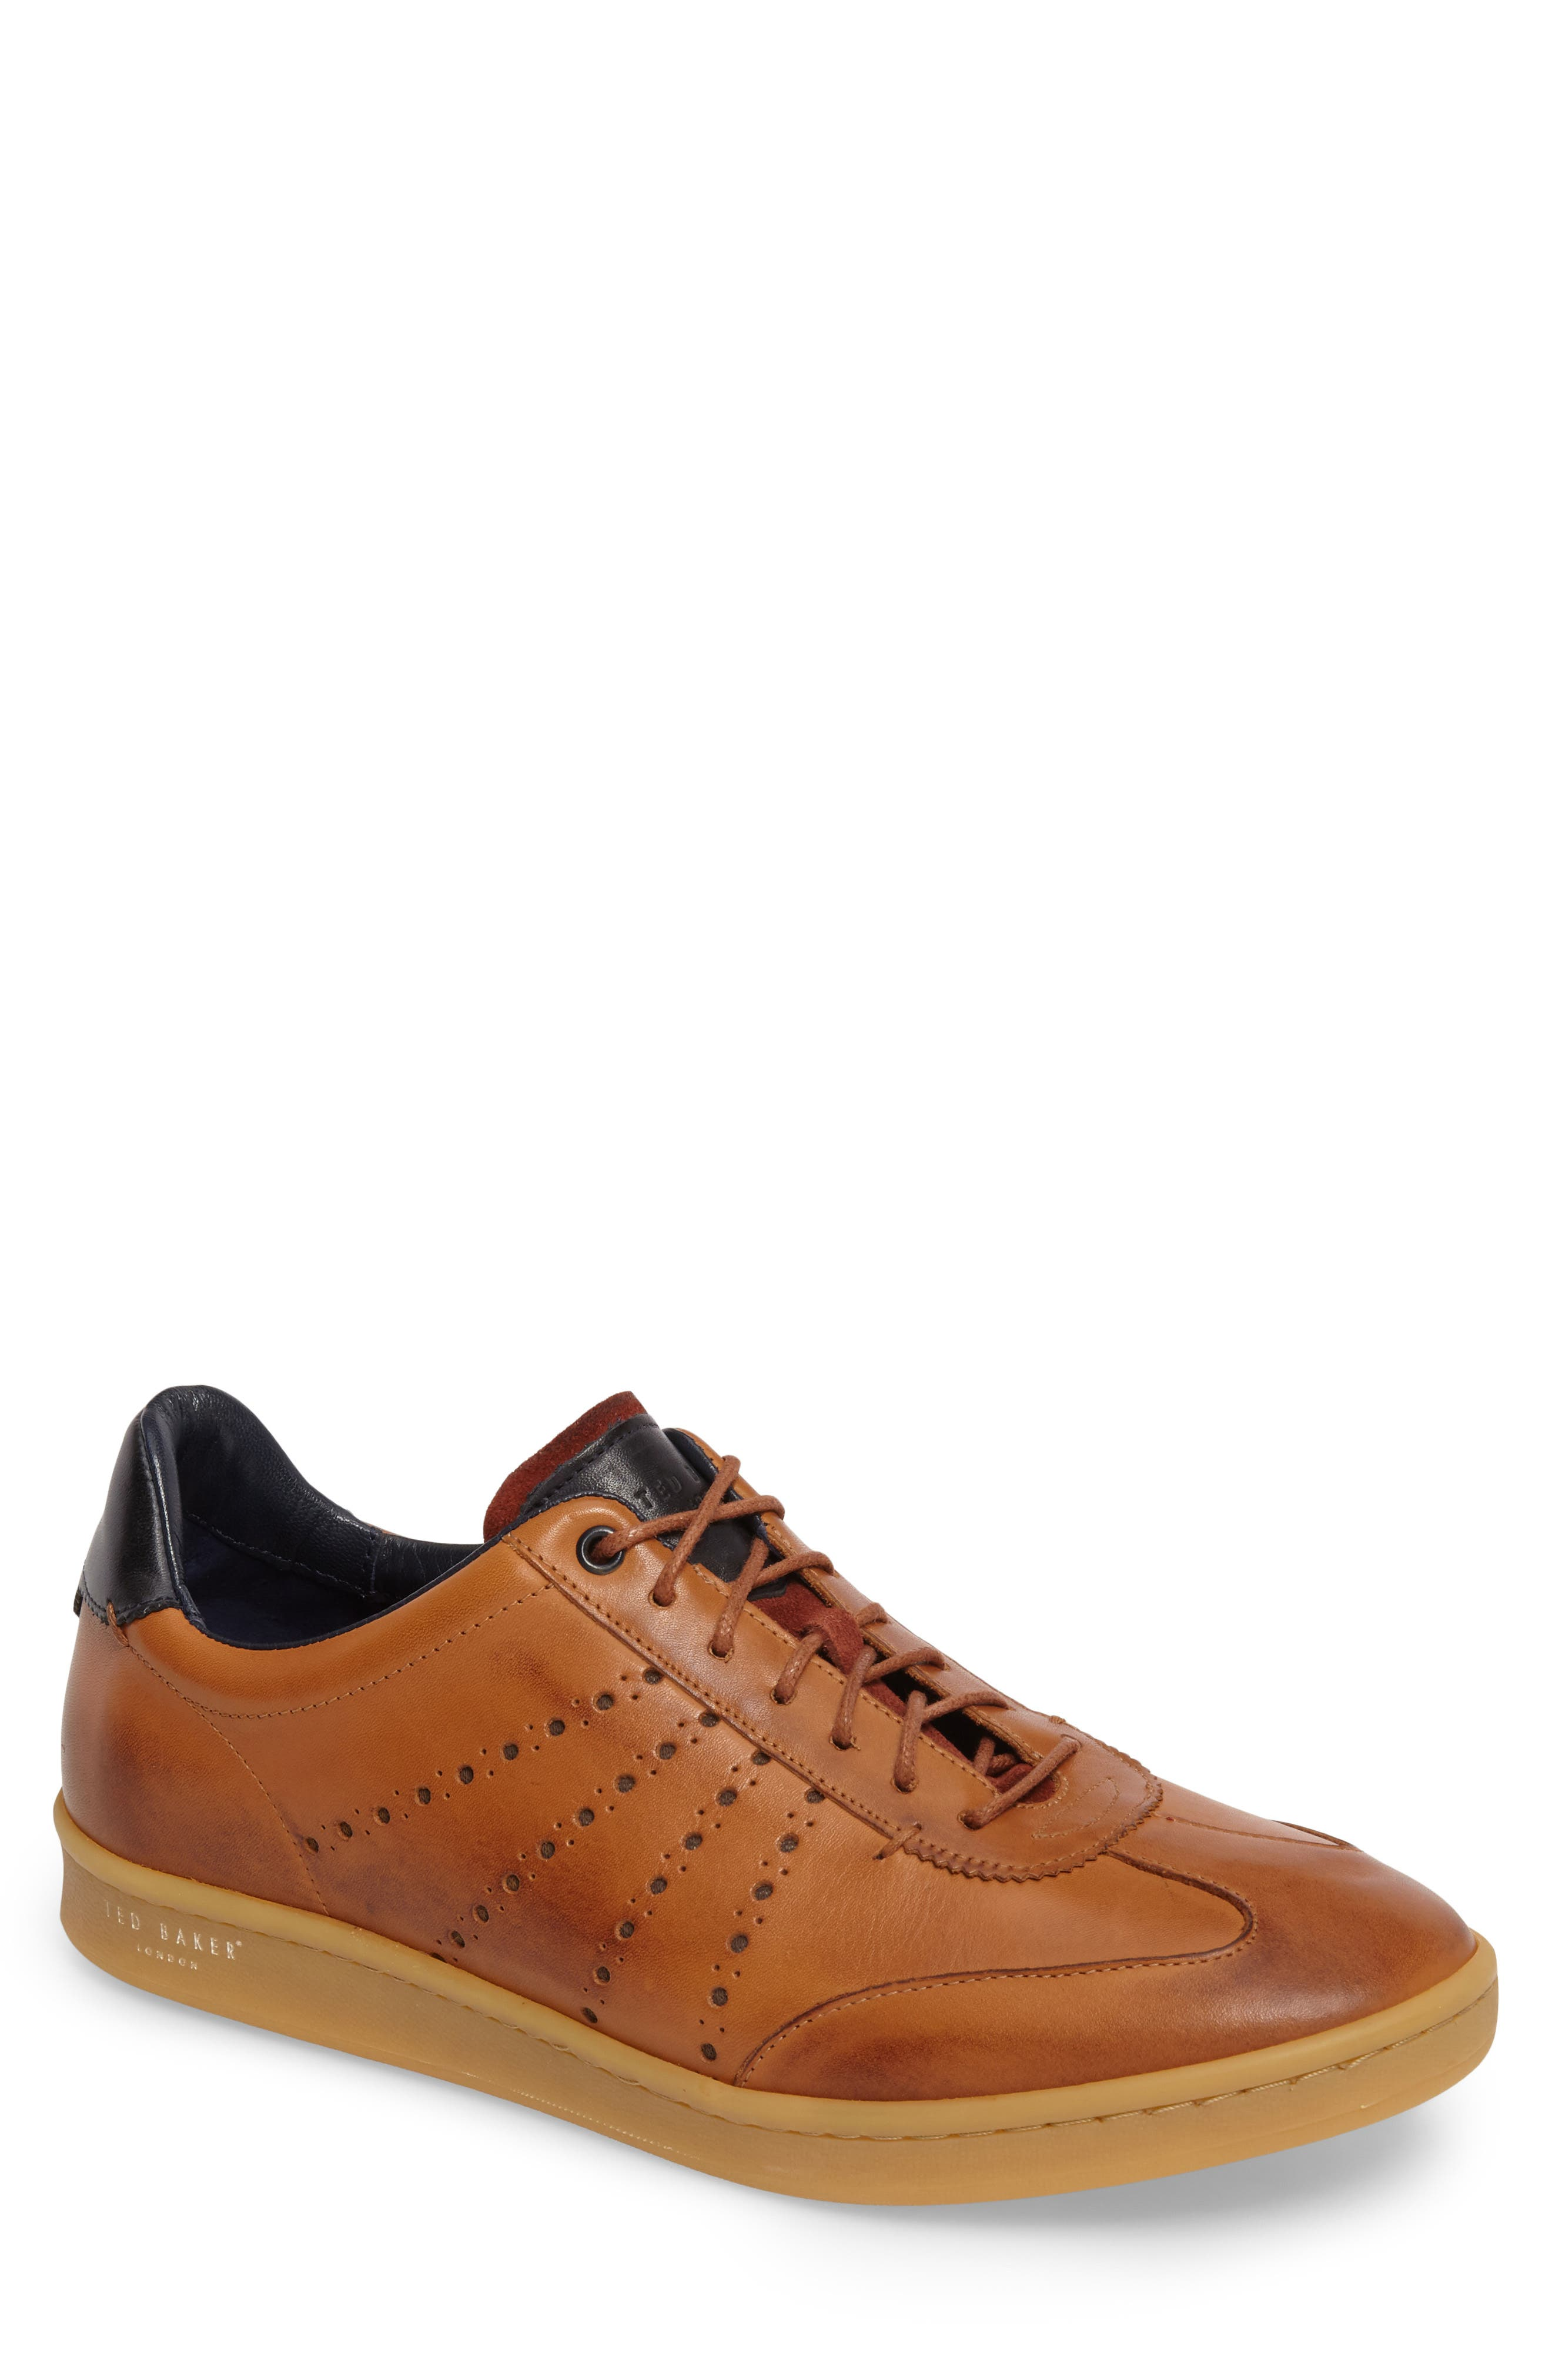 Orlee Sneaker,                             Main thumbnail 3, color,